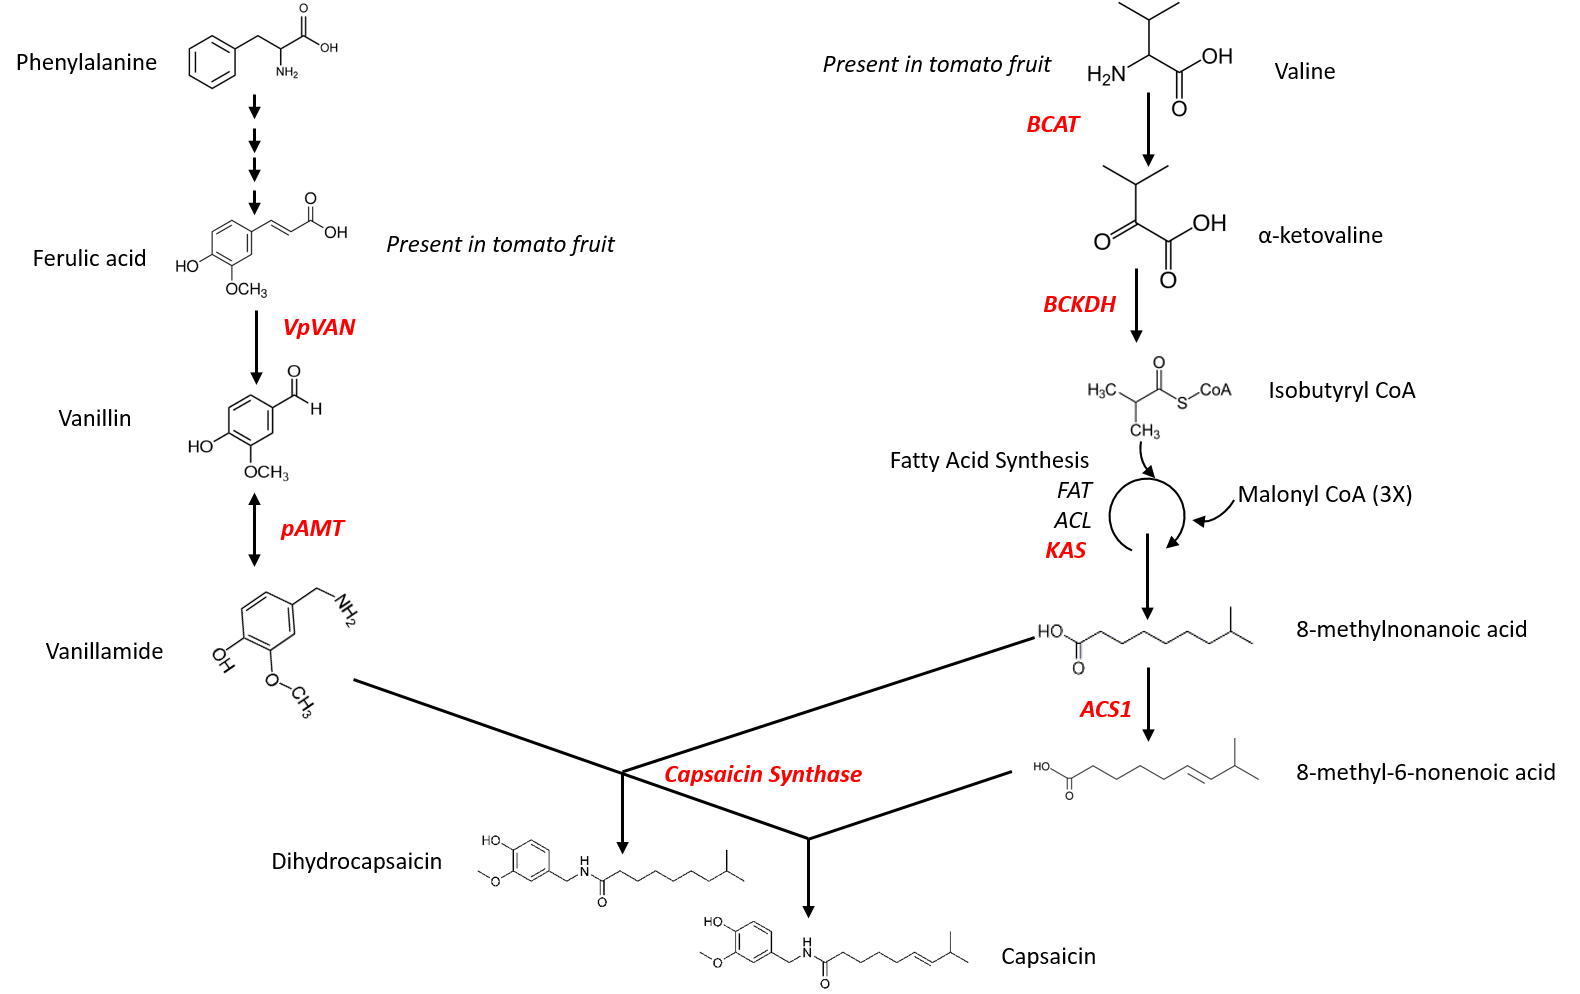 """16.00         Figure 1. Engineering the capsaicin pathway in tomato. Genes in red were cloned to complete the pathway in tomato. All genes originate from chili pepper with the exception of VpVAN which was isolated from the vanilla orchid (Vanilla planifolia), as the chili pepper enzyme for this step is not yet known.         Normal   0           false   false   false     EN-GB   X-NONE   X-NONE                                                                                                                                                                                                                                                                                                                                                                                                                                                                                                                                                                                                                                                                                                                                                                                                                                                                       /* Style Definitions */  table.MsoNormalTable {mso-style-name:""""Table Normal""""; mso-tstyle-rowband-size:0; mso-tstyle-colband-size:0; mso-style-noshow:yes; mso-style-priority:99; mso-style-parent:""""""""; mso-padding-alt:0cm 5.4pt 0cm 5.4pt; mso-para-margin:0cm; mso-para-margin-bottom:.0001pt; line-height:115%; mso-pagination:widow-orphan; font-size:11.0pt; font-family:""""Arial"""",sans-serif; color:black;}"""